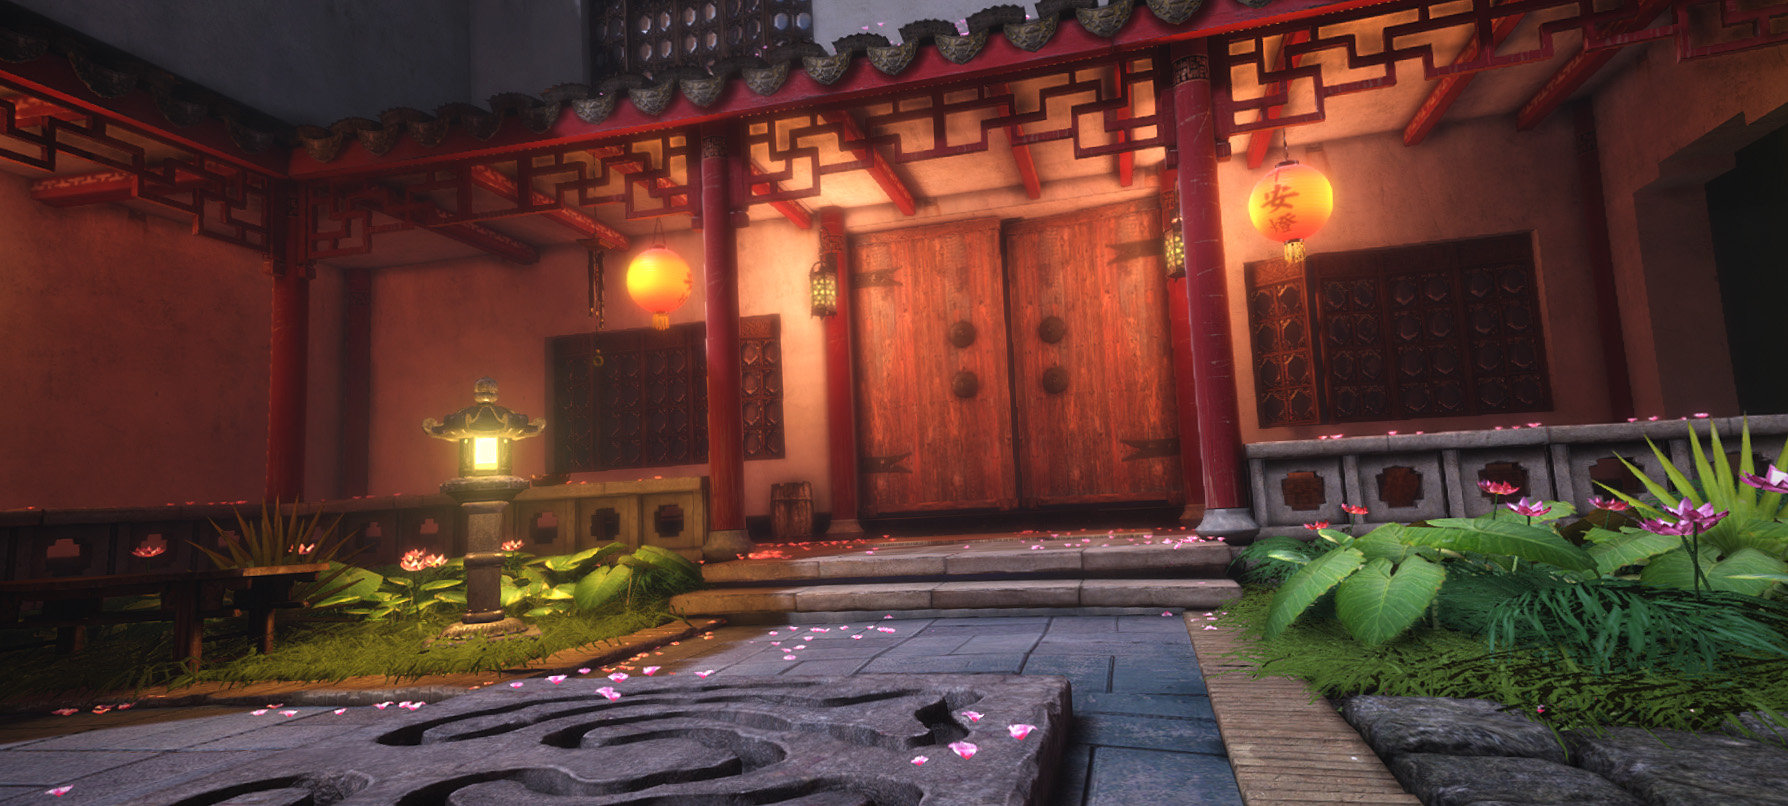 Jeff severson chinese courtyard night 07